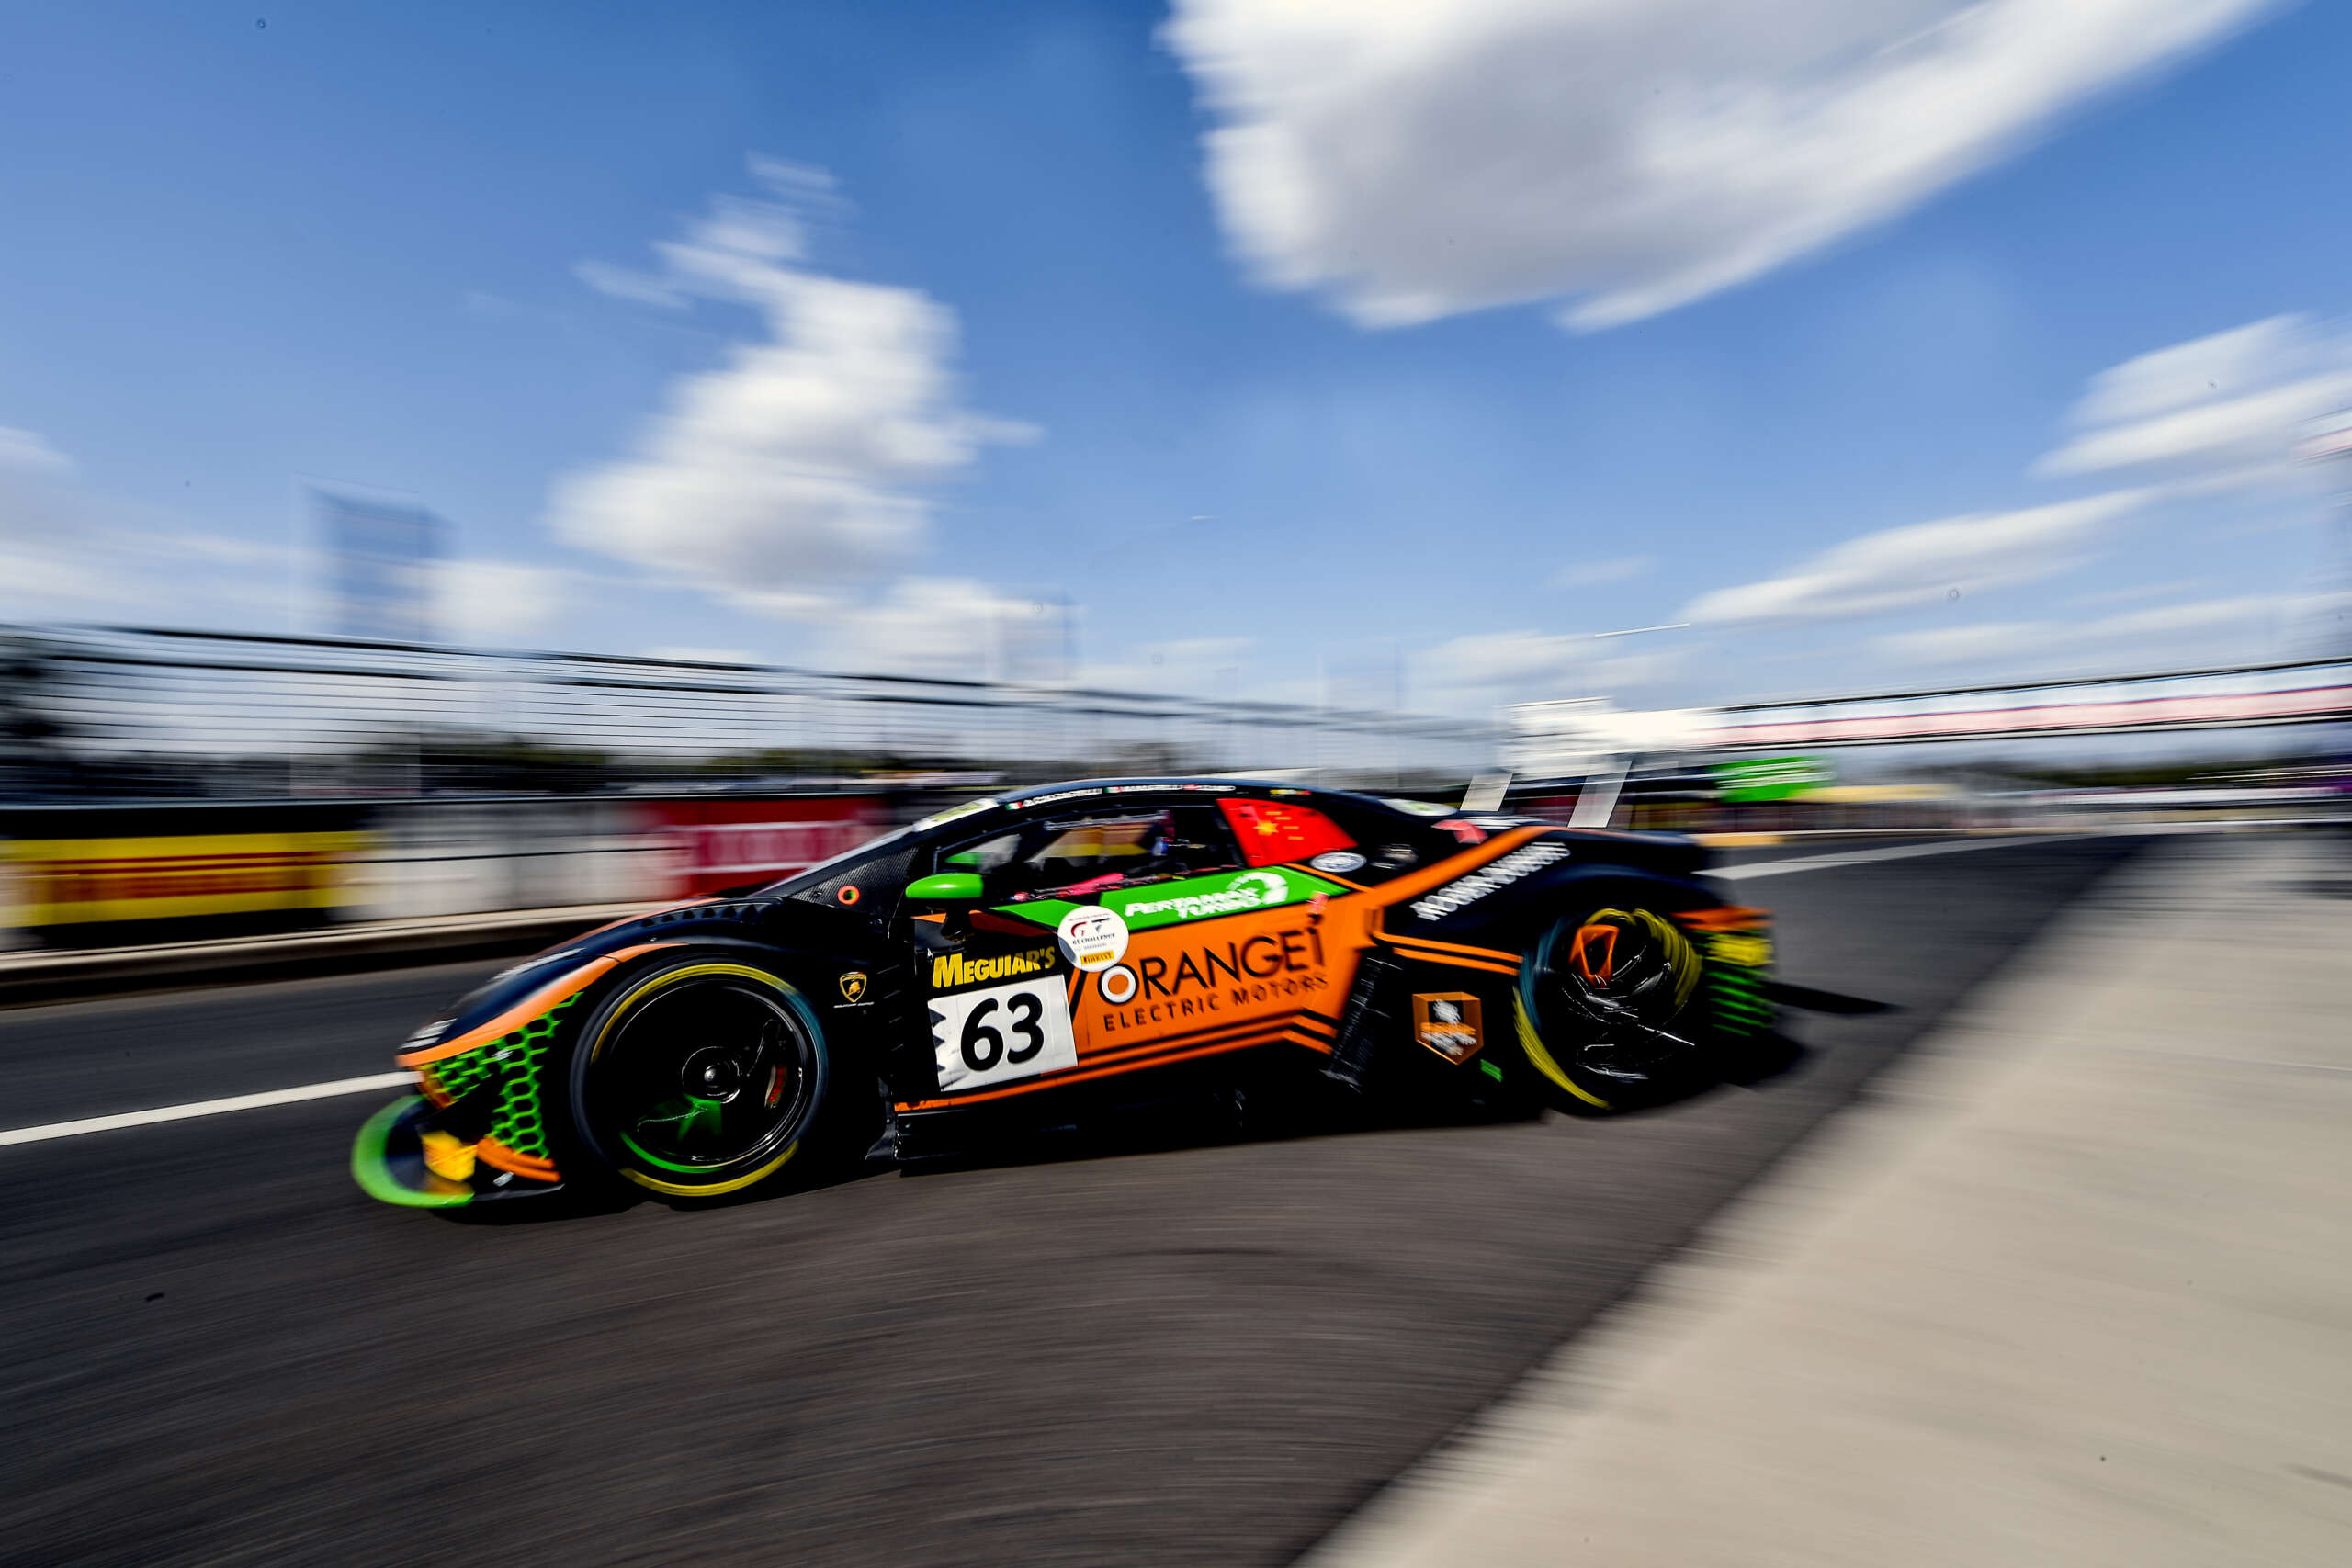 ORANGE1 FFF Racing Team by ACM annuncia la line-up piloti per il 2020